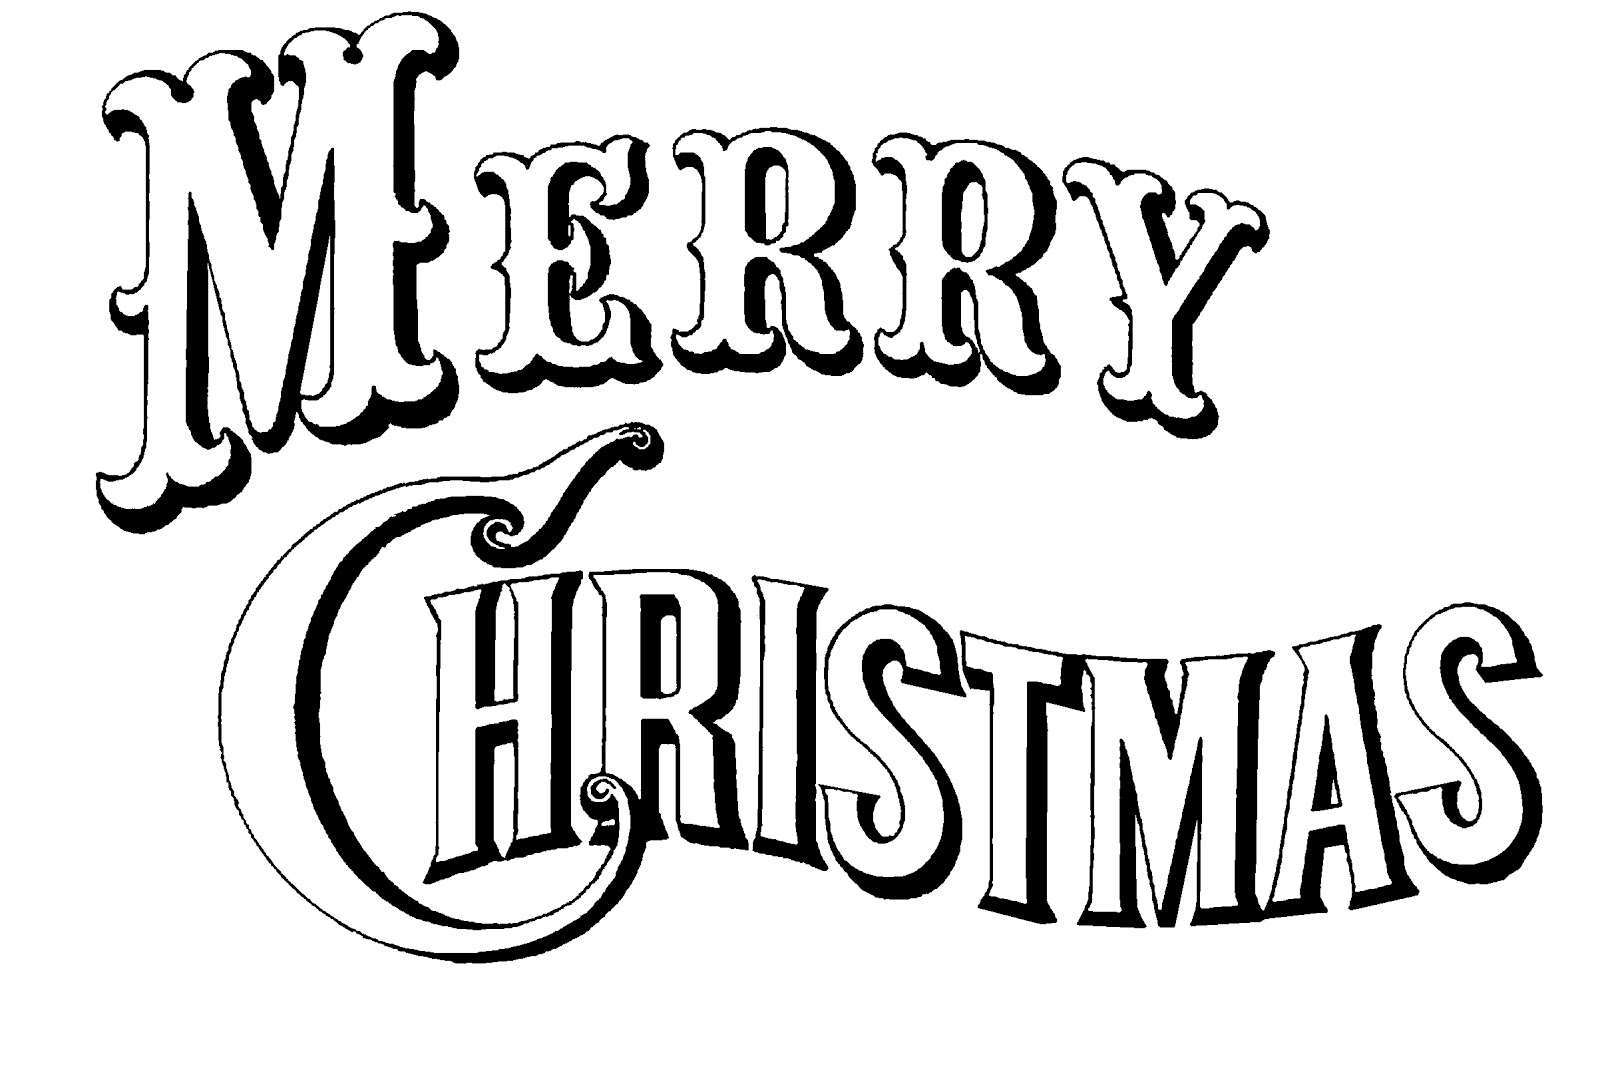 Merry Christmas Text.20 Merry Christmas Text Clipart Clipartlook